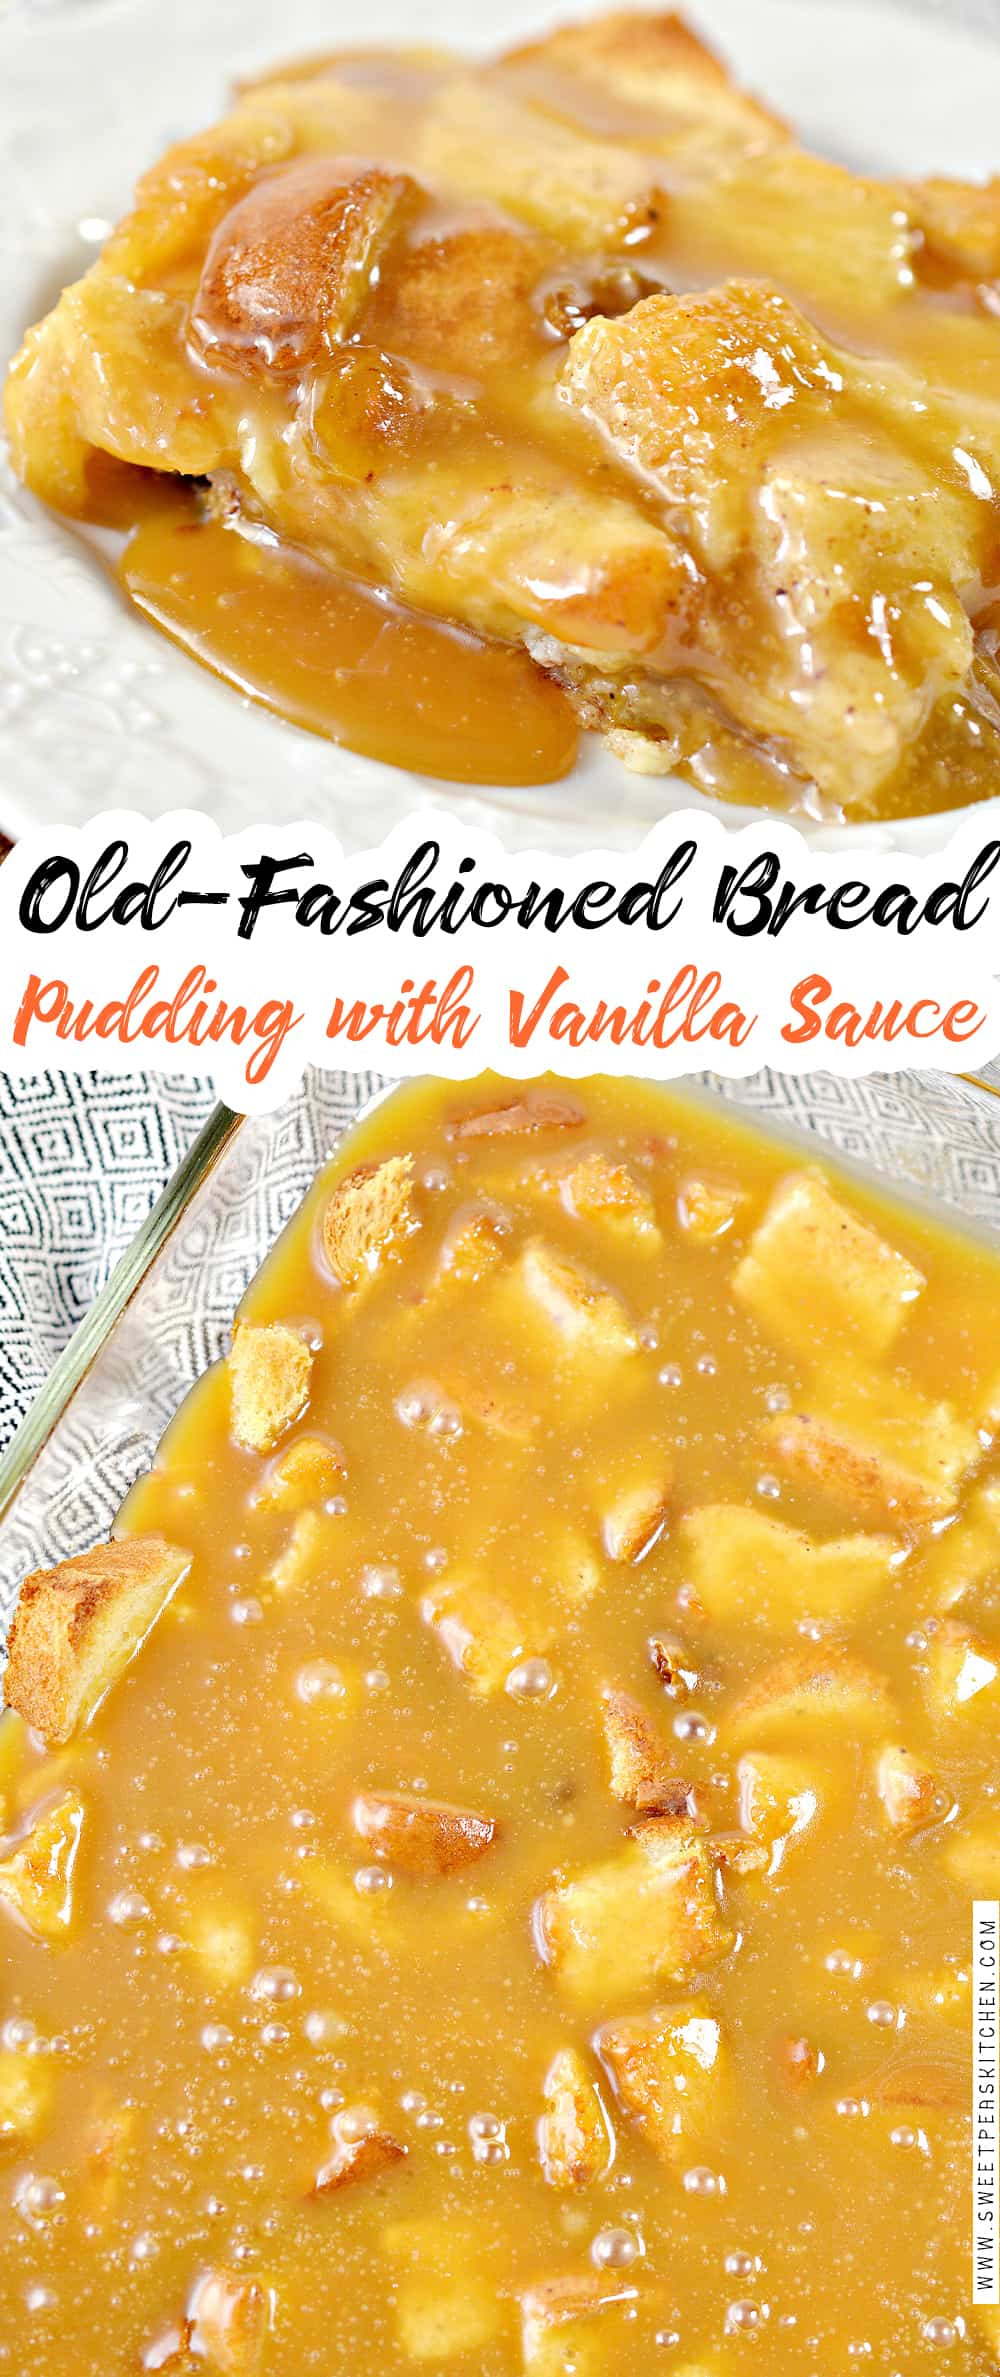 Old Fashioned Bread Pudding with Vanilla Sauce